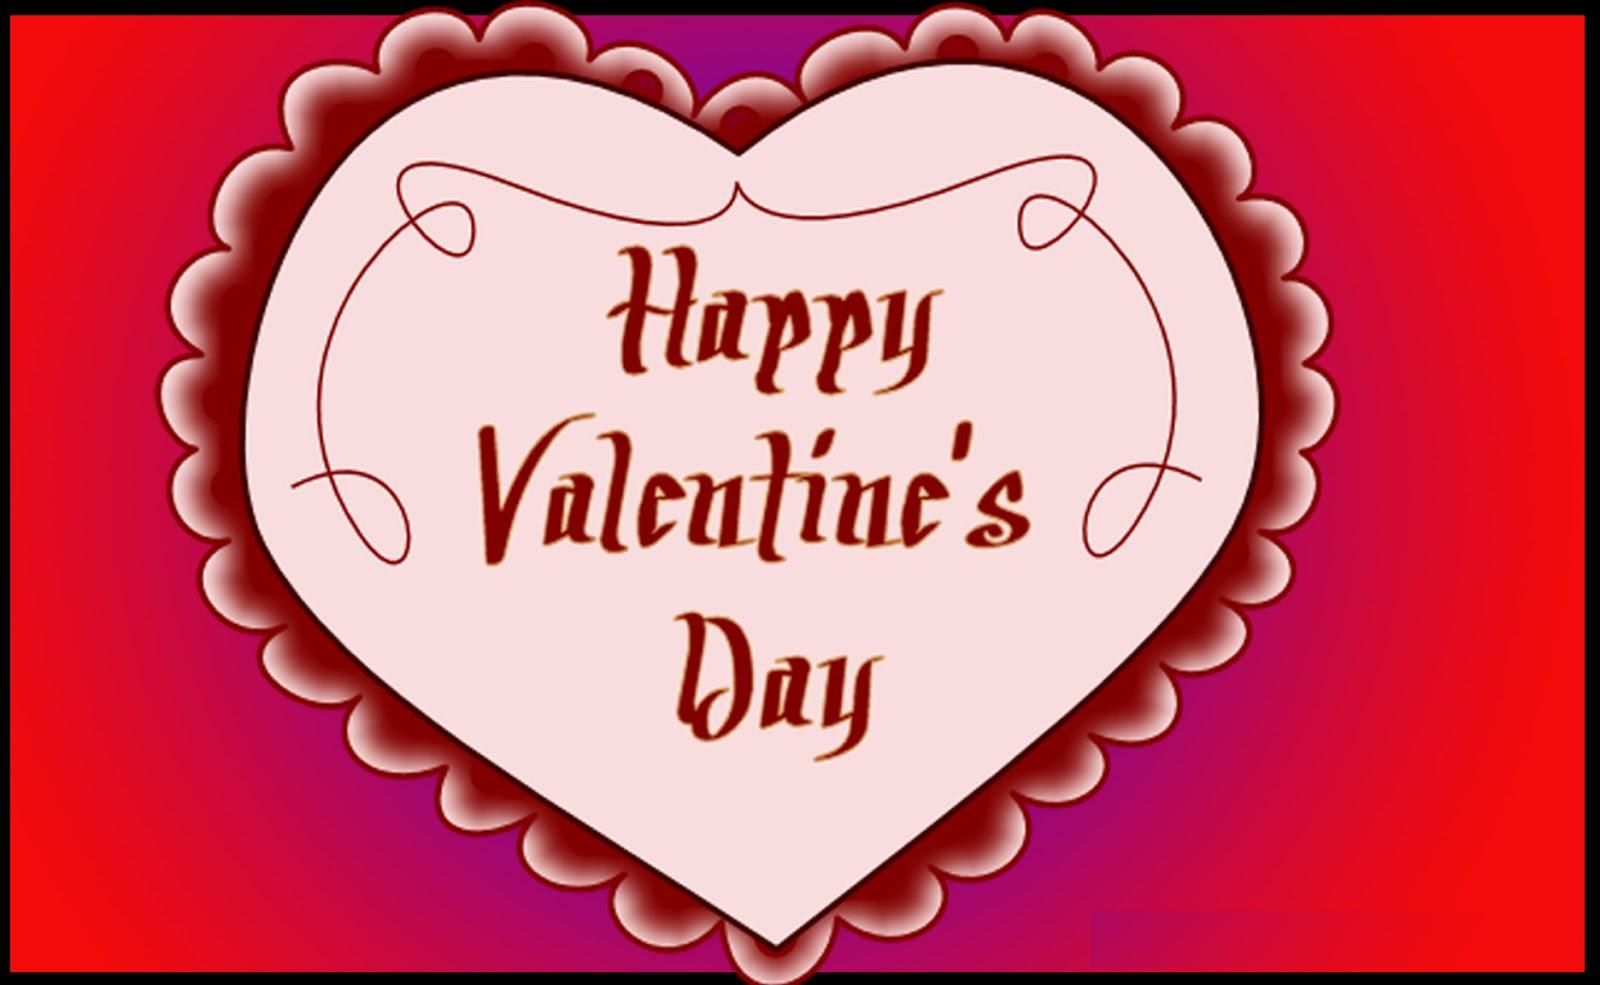 Happy Valentines Day Wallpapers Free Wallpaper